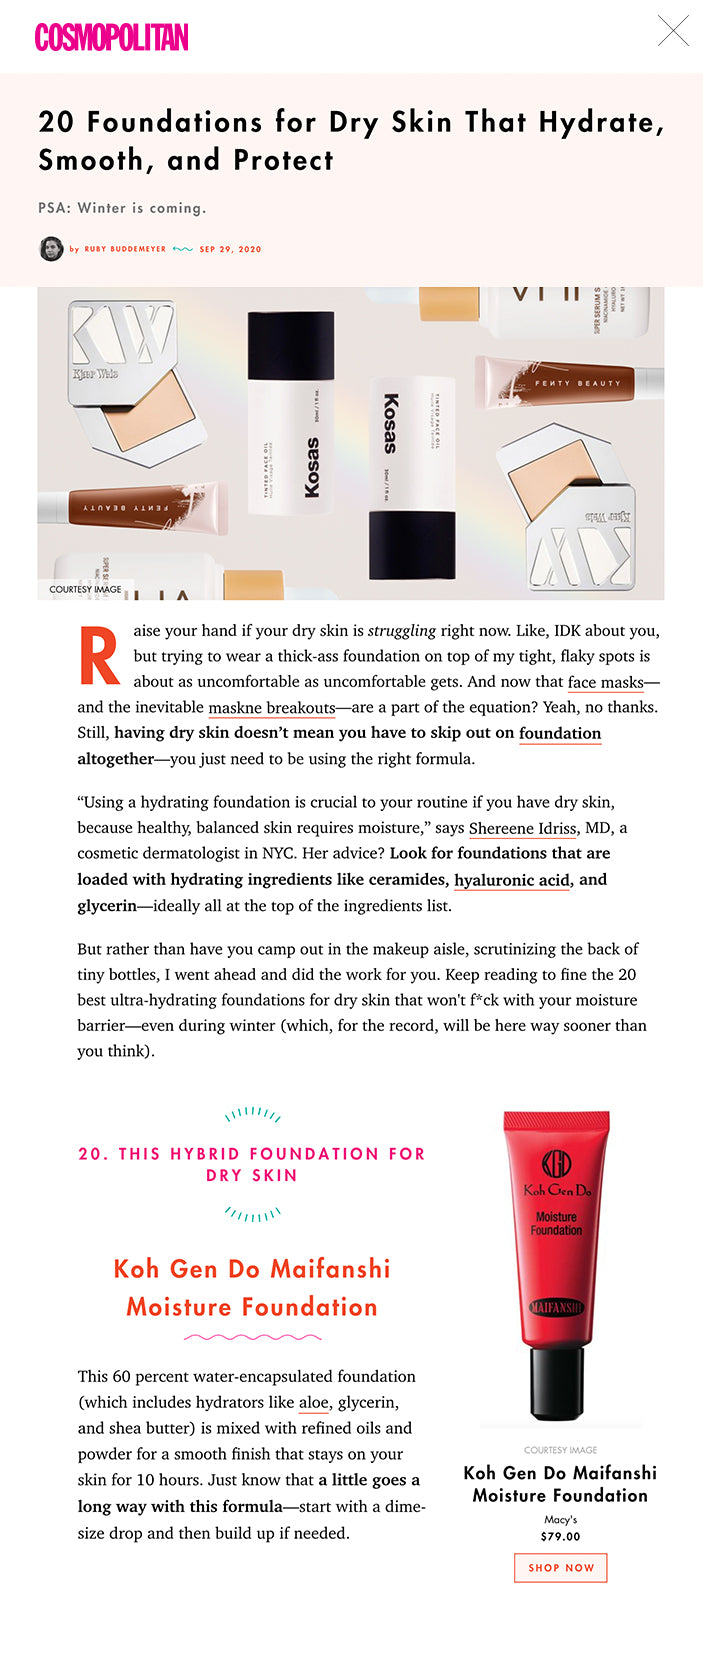 """20 Foundations for Dry Skin That Hydrate, Smooth, and Protect PSA: Winter is coming.   by RUBY BUDDEMEYER  SEP 29, 2020 foundations for dry skinCOURTESY IMAGE Raise your hand if your dry skin is struggling right now. Like, IDK about you, but trying to wear a thick-ass foundation on top of my tight, flaky spots is about as uncomfortable as uncomfortable gets. And now that face masks—and the inevitable maskne breakouts—are a part of the equation? Yeah, no thanks. Still, having dry skin doesn't mean you have to skip out on foundation altogether—you just need to be using the right formula.  """"Using a hydrating foundation is crucial to your routine if you have dry skin, because healthy, balanced skin requires moisture,"""" says Shereene Idriss, MD, a cosmetic dermatologist in NYC. Her advice? Look for foundations that are loaded with hydrating ingredients like ceramides, hyaluronic acid, and glycerin—ideally all at the top of the ingredients list.  But rather than have you camp out in the makeup aisle, scrutinizing the back of tiny bottles, I went ahead and did the work for you. Keep reading to fine the 20 best ultra-hydrating foundations for dry skin that won't f*ck with your moisture barrier—even during winter (which, for the record, will be here way sooner than you think).  more from cosmopolitan This content is imported from {embed-name}. You may be able to find the same content in another format, or you may be able to find more information, at their web site.   COURTESY IMAGE Black Opal Skin Perfecting Stick Foundation SPF 15 walmart.com $9.93 SHOP NOW 1. THIS STICK FOUNDATION FOR DRY SKIN Black Opal Skin Perfecting Stick Foundation SPF 15 Is there anything more convenient than a foundation stick? Nope, and this hydrating, easy-to-apply formula from Black Opal is no exception. It's spiked with vitamins C and E for a nice dose of skin-protecting antioxidants, and it leaves your dry skin with a soft, velvety finish that doesn't cake or settle into fine lines. That's what """